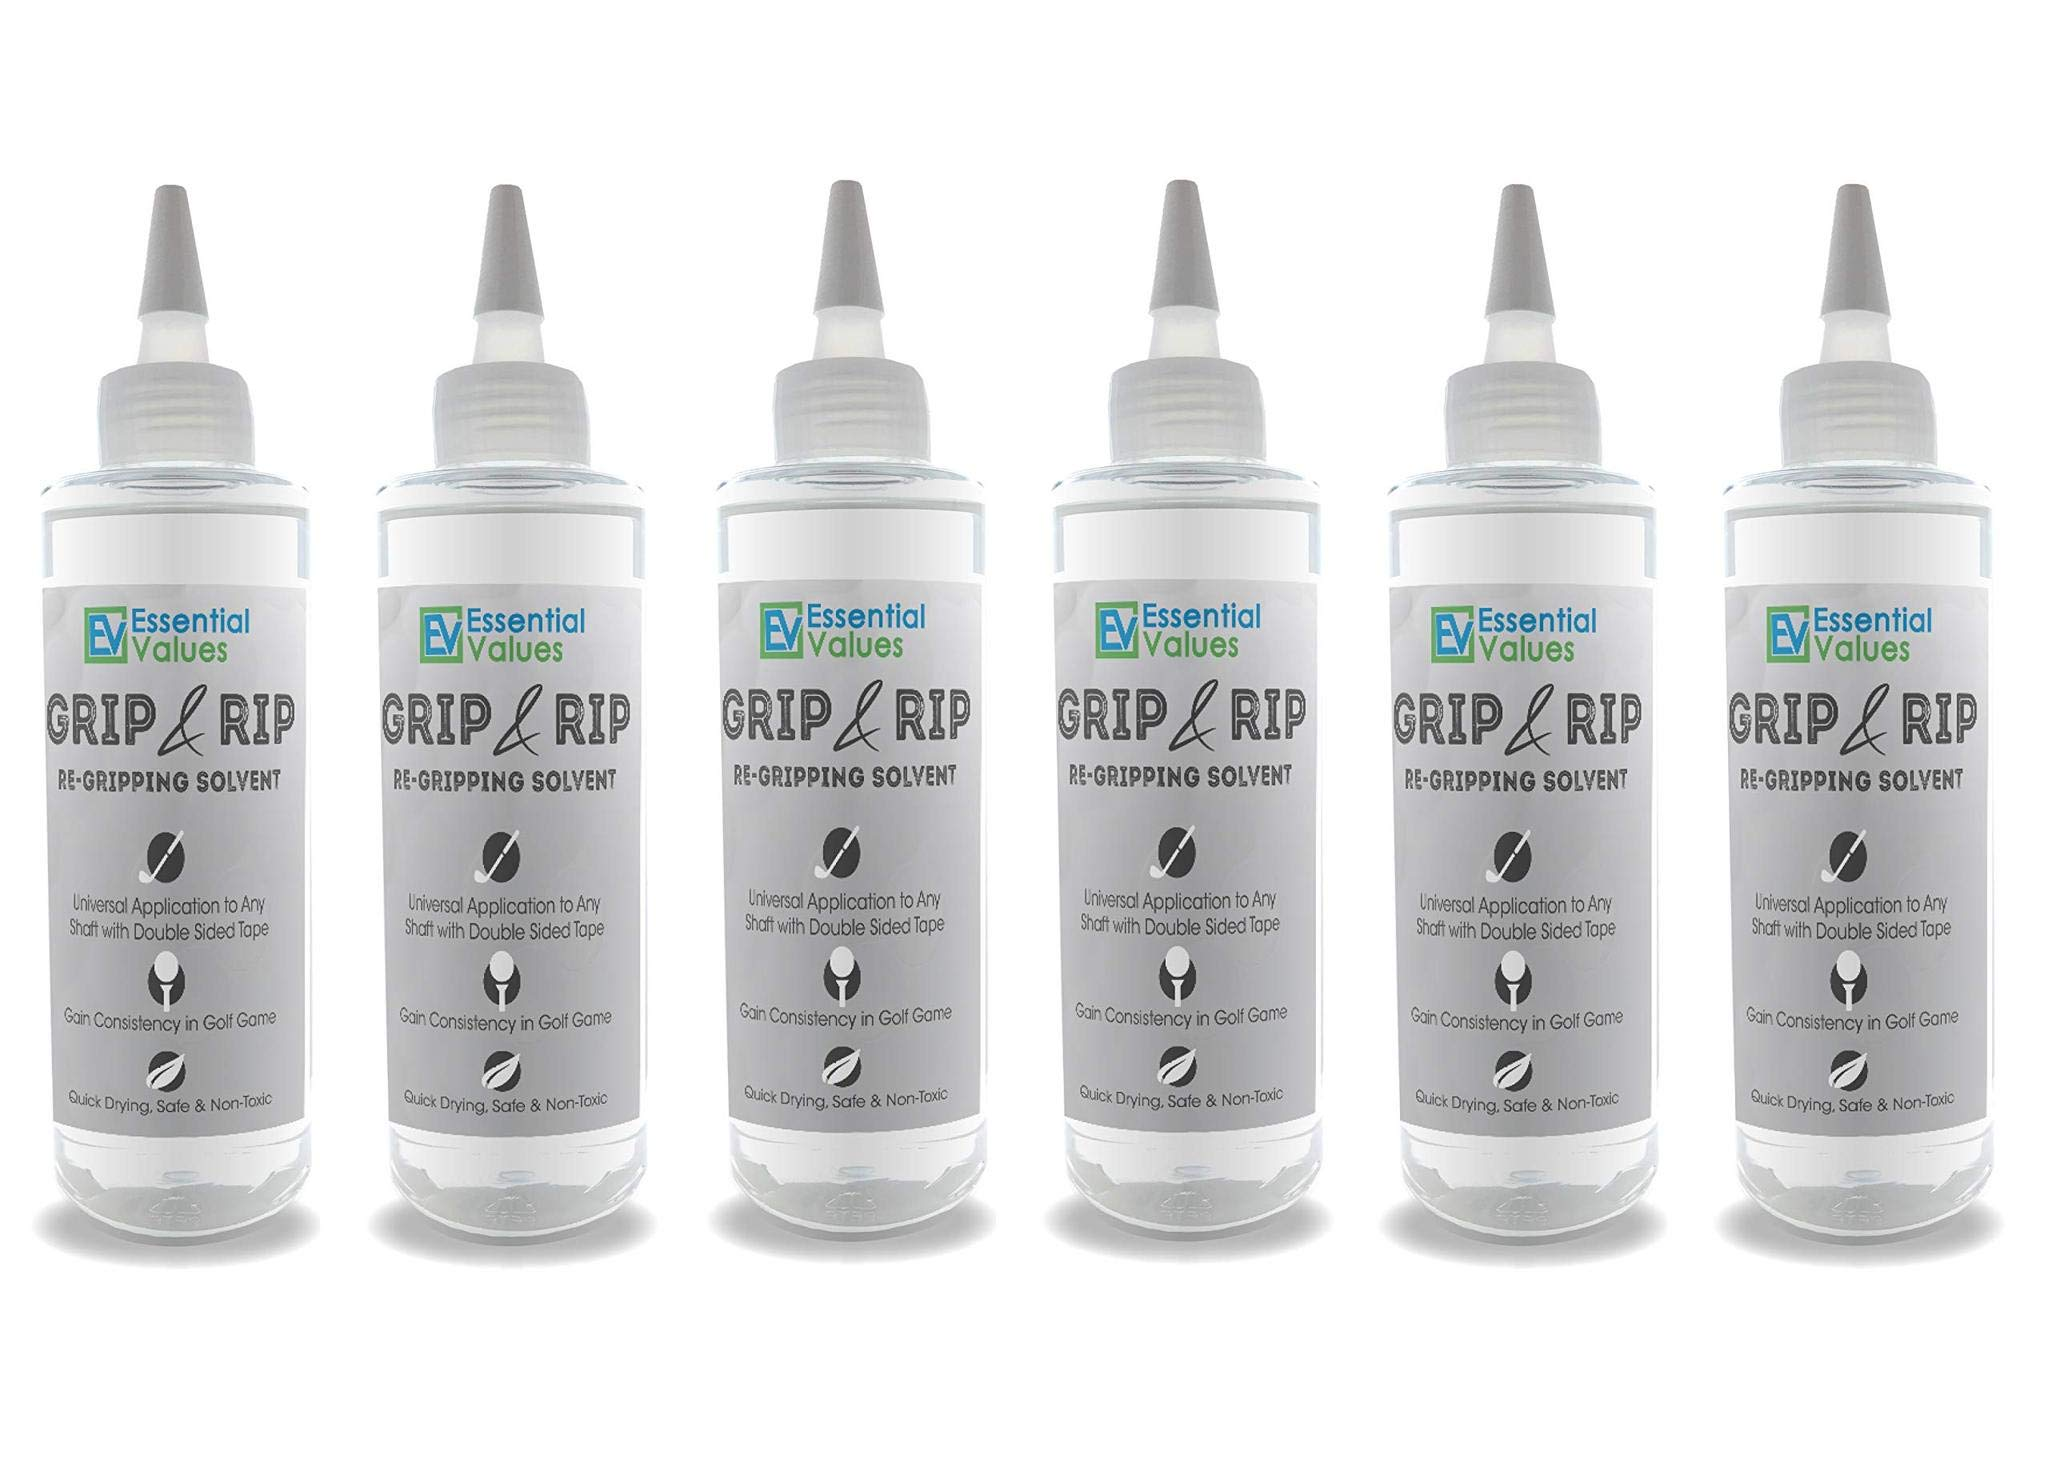 Essential Values 6 Pack Golf Regripping Solvent (8 Fl Oz), Double The Solution Compared to Others - Excellent for Quick & Easy Regripping of Golf Clubs - Made in USA